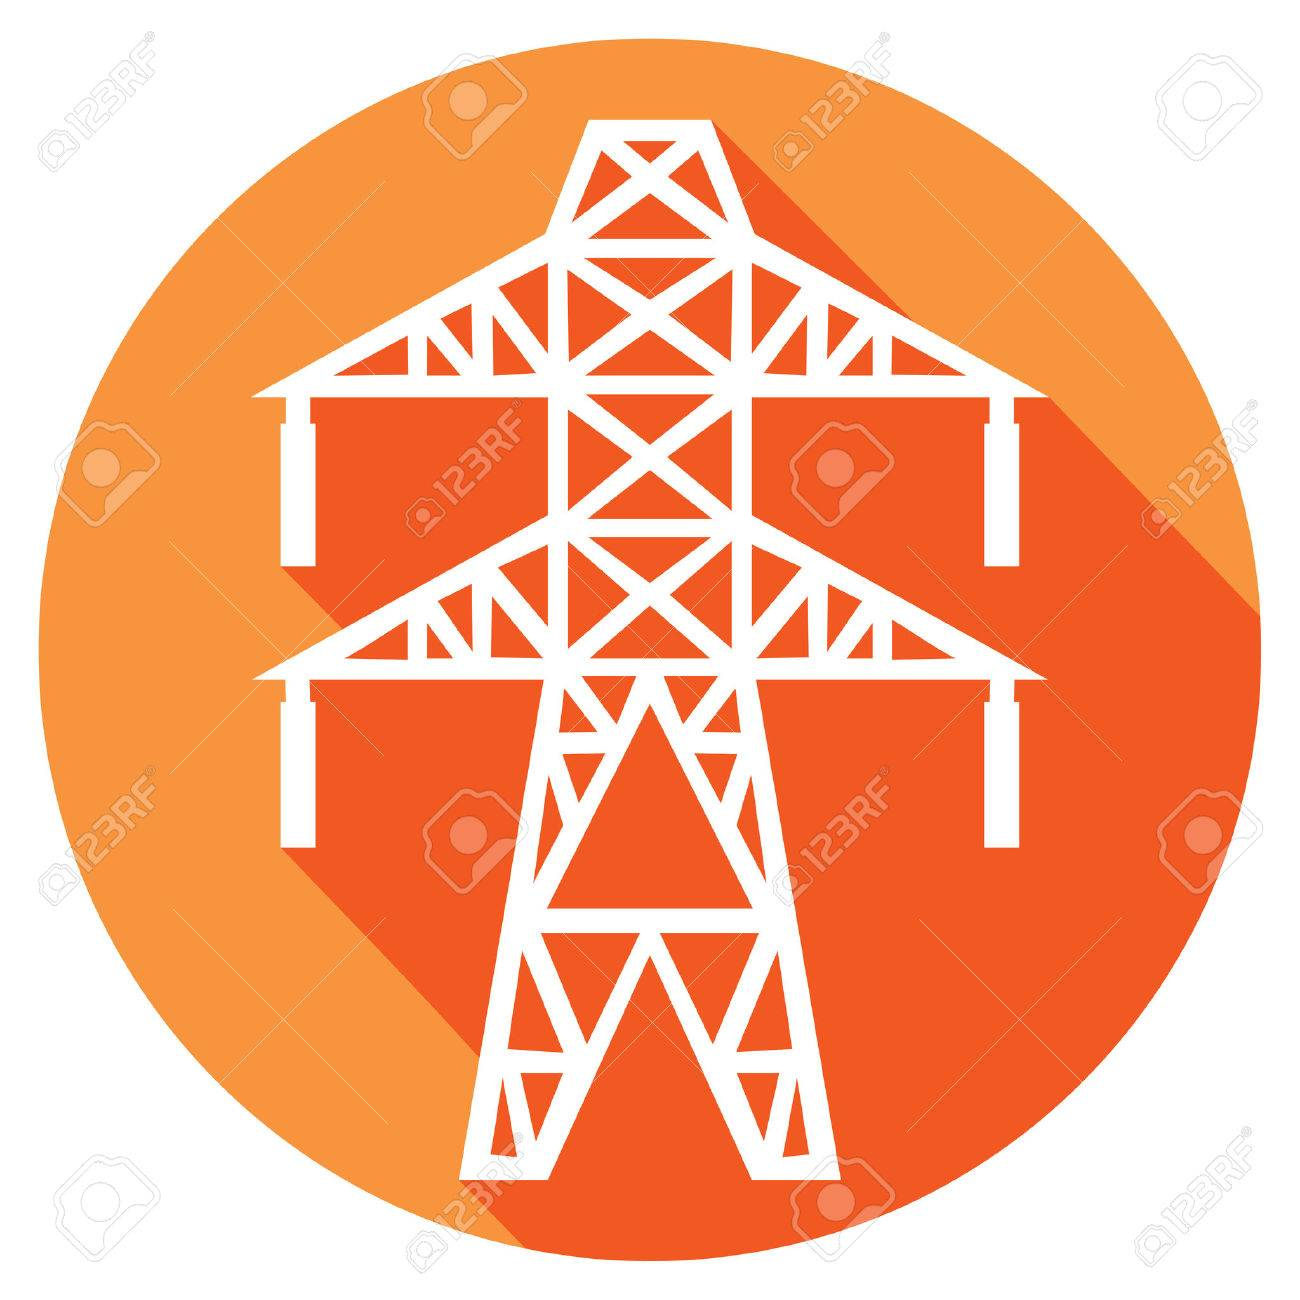 Power line flat icon electric transmission line symbol royalty power line flat icon electric transmission line symbol stock vector 52265922 biocorpaavc